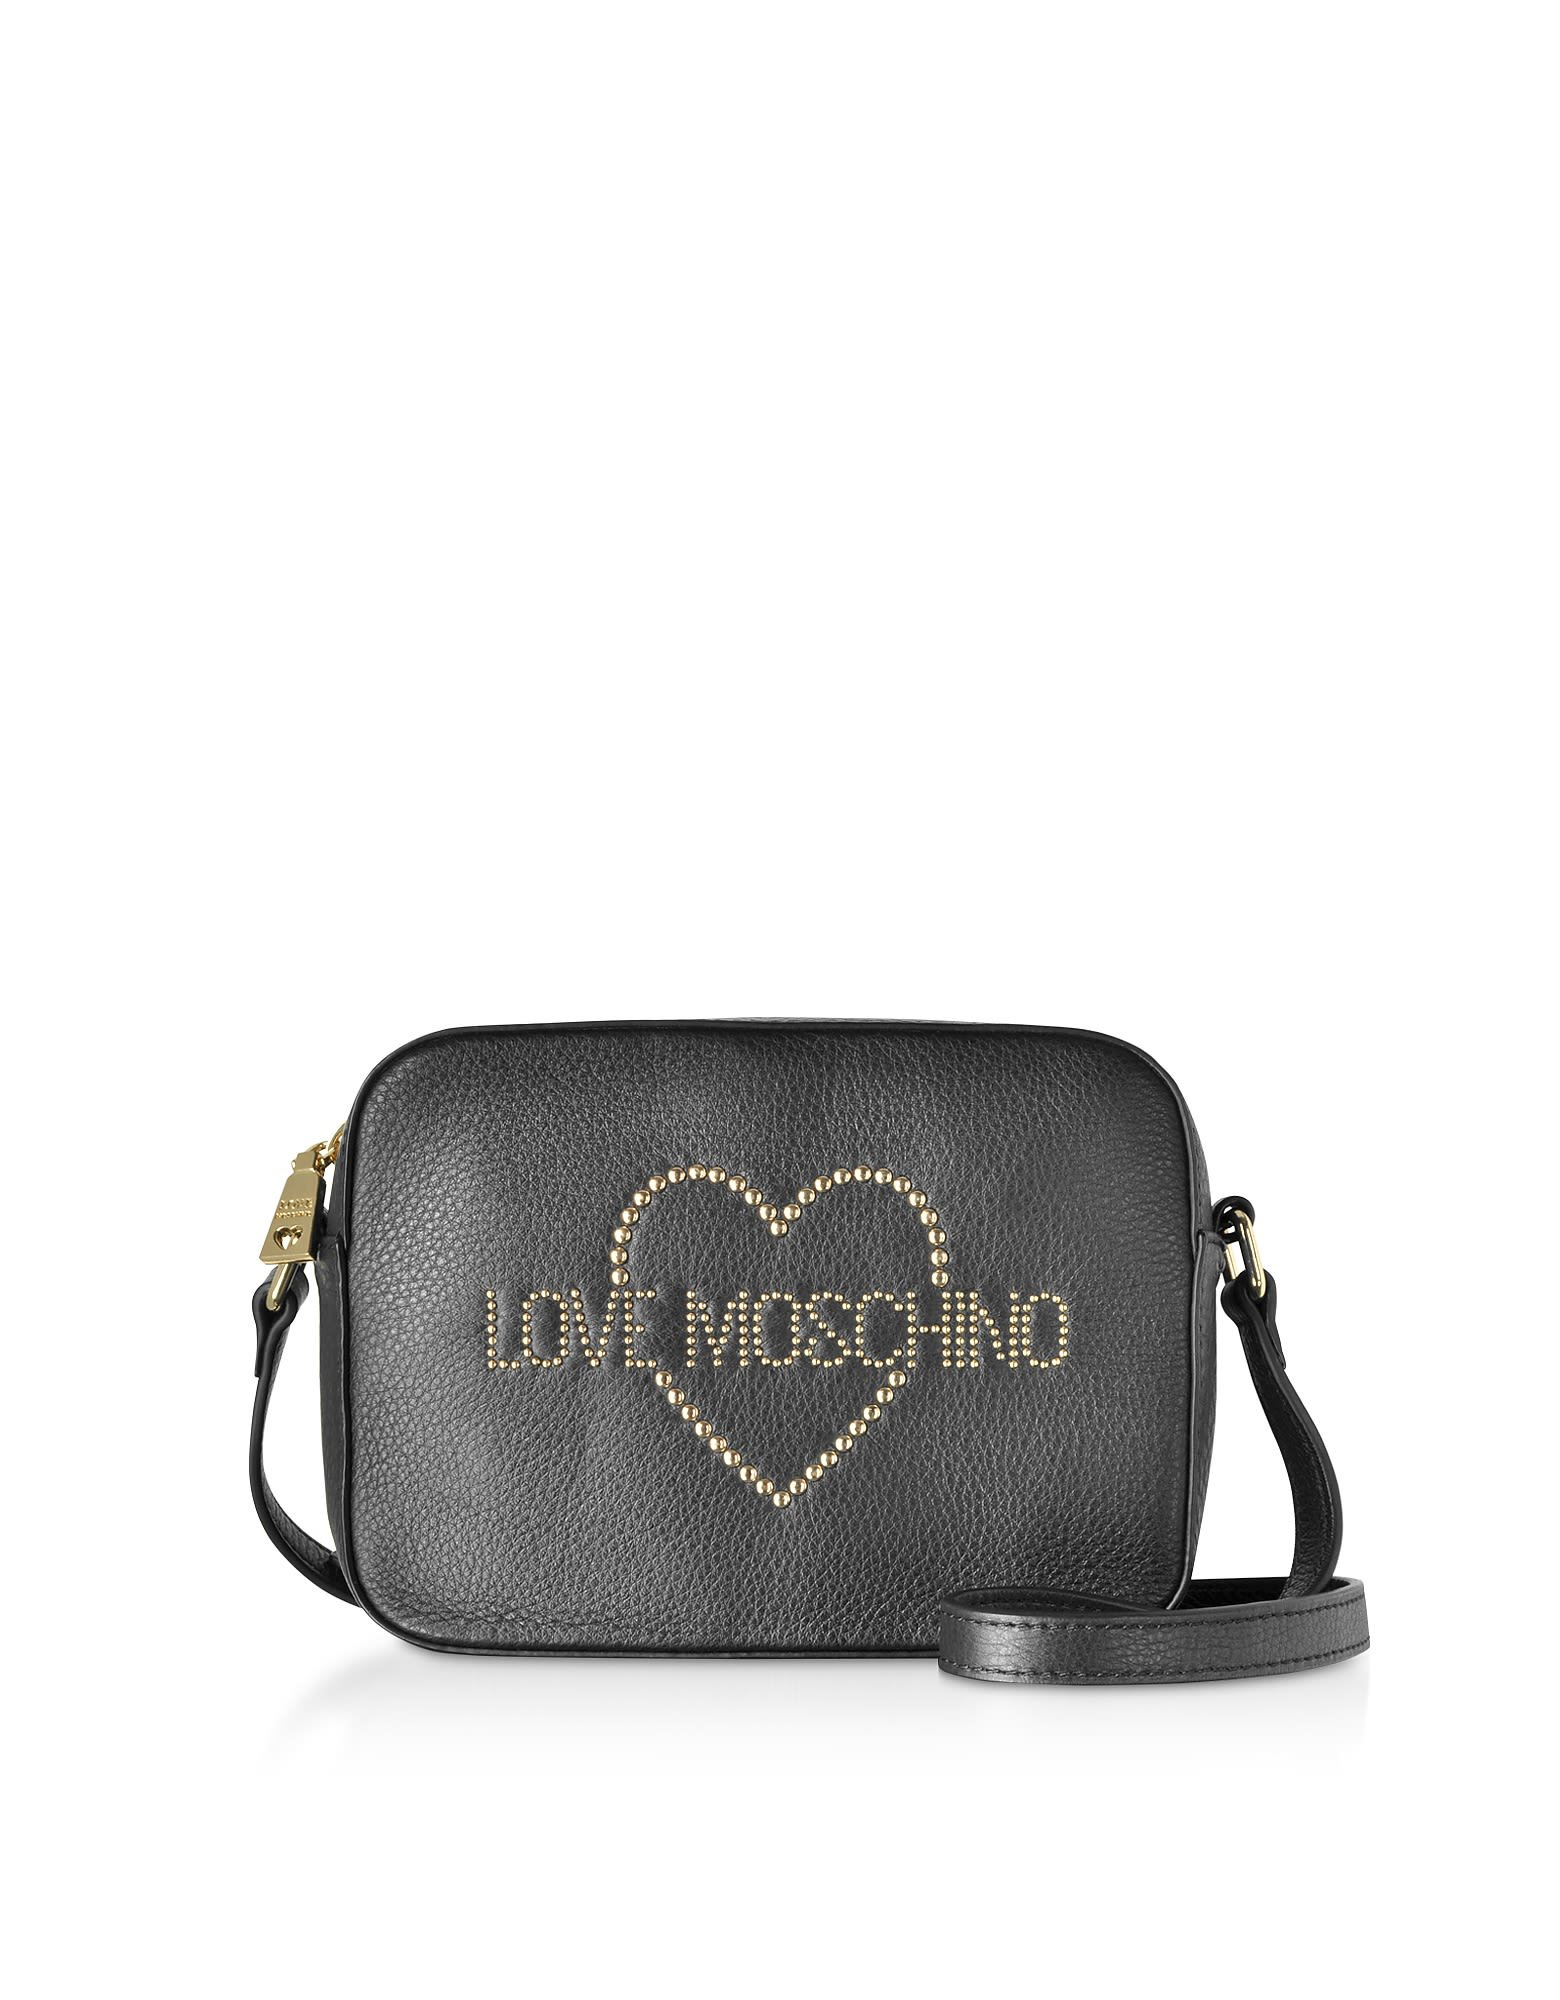 Love Moschino Small Leather Crossbody Bag W/ Golden Studs